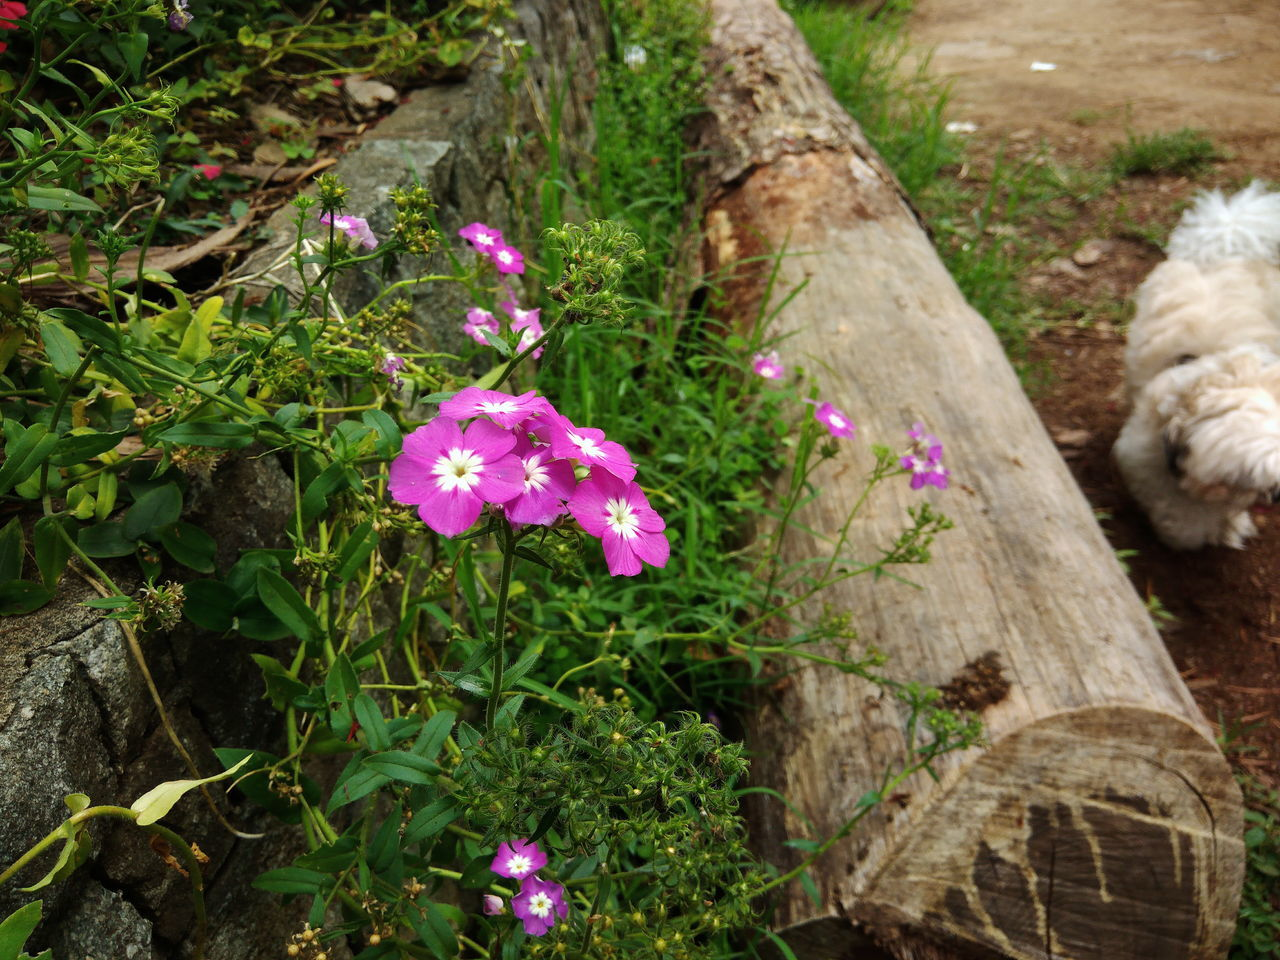 flower, nature, outdoors, growth, no people, plant, day, fragility, beauty in nature, grass, flower head, freshness, close-up